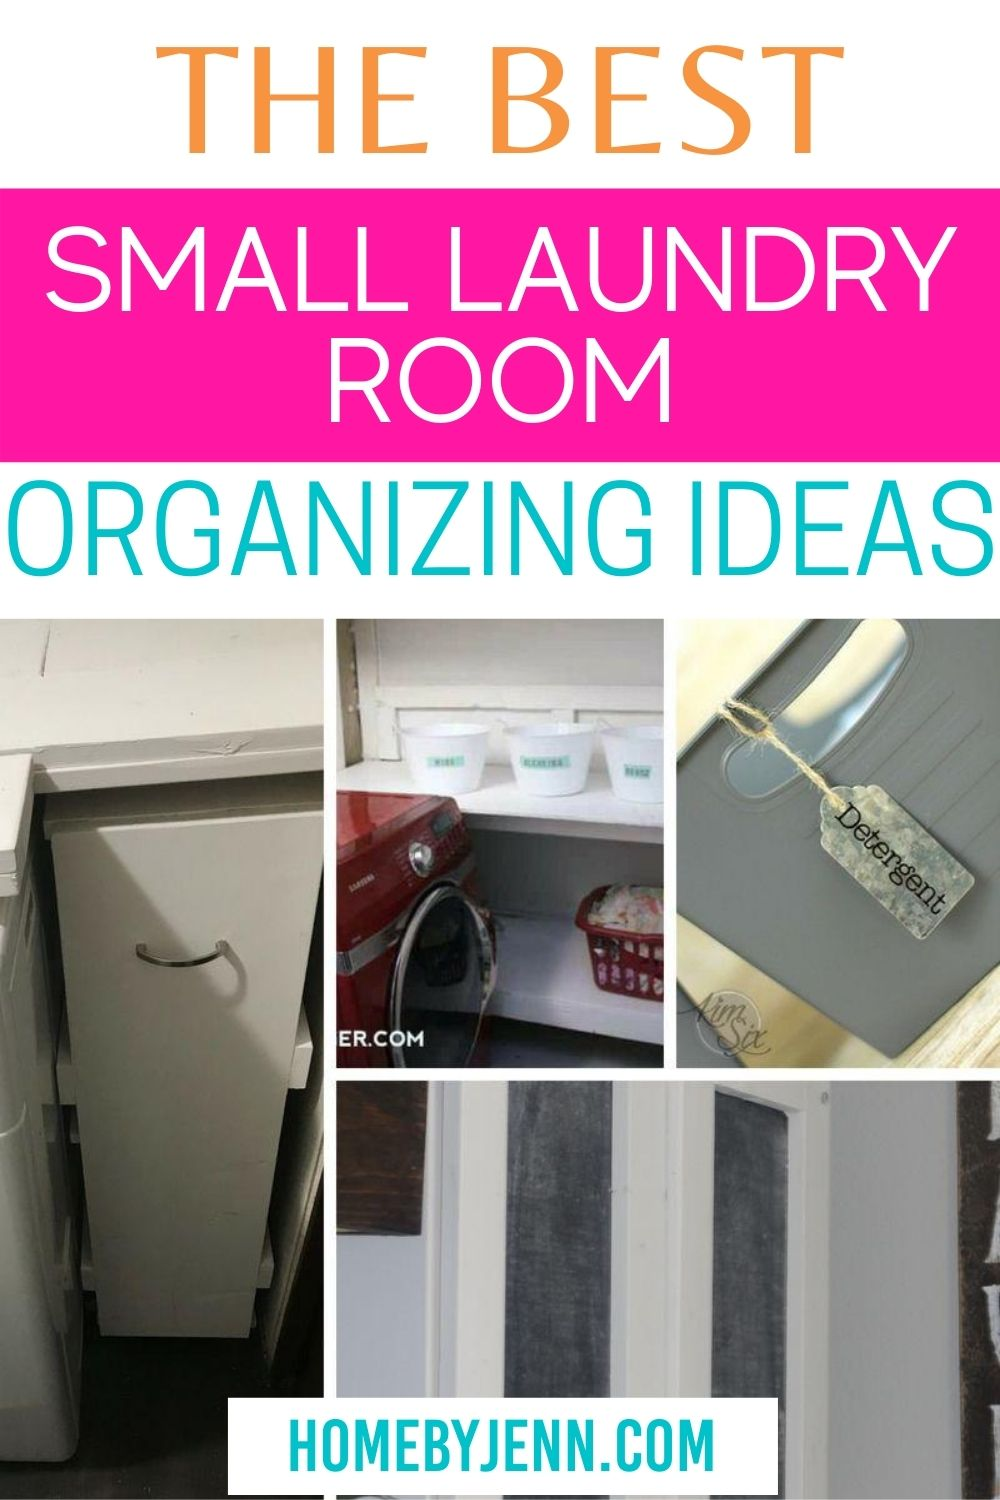 Get inspired to organize your laundry room with these laundry room organization ideas. #laundryroom #laundry #organizing #organize #organizingideas via @homebyjenn